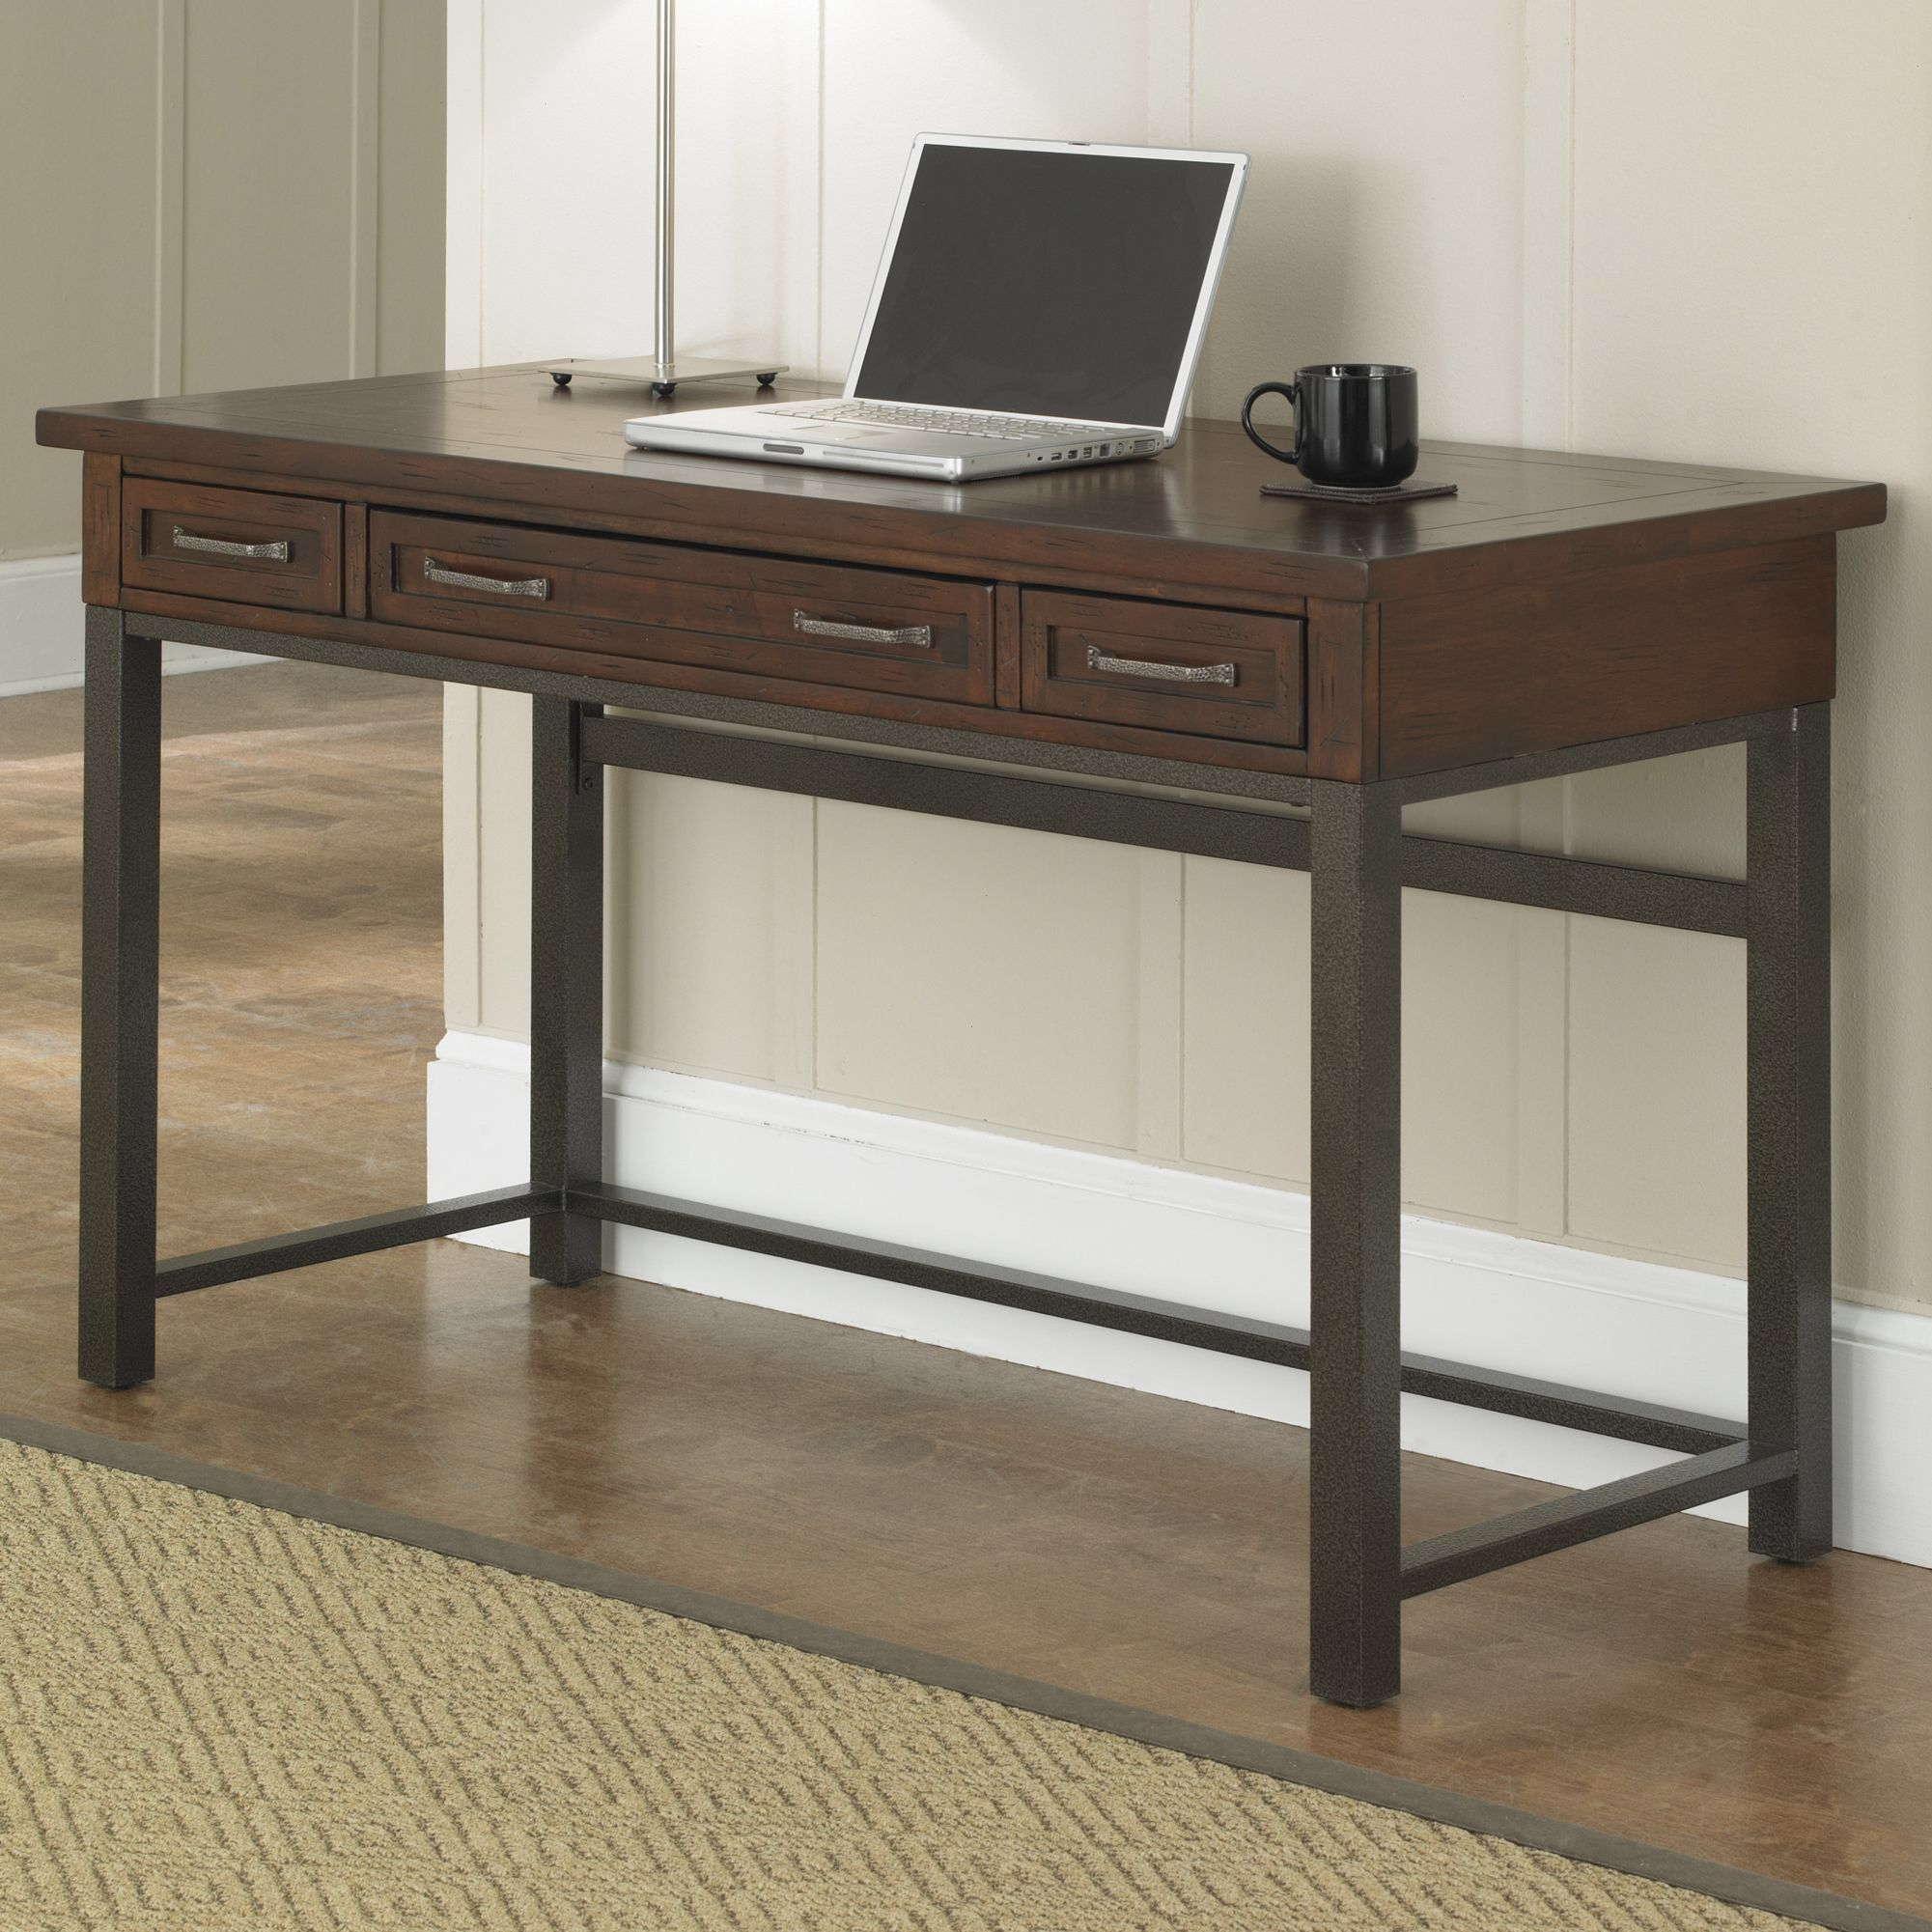 cabin creek computer desk with 1 right 1 left drawer dining room rh pinterest co uk